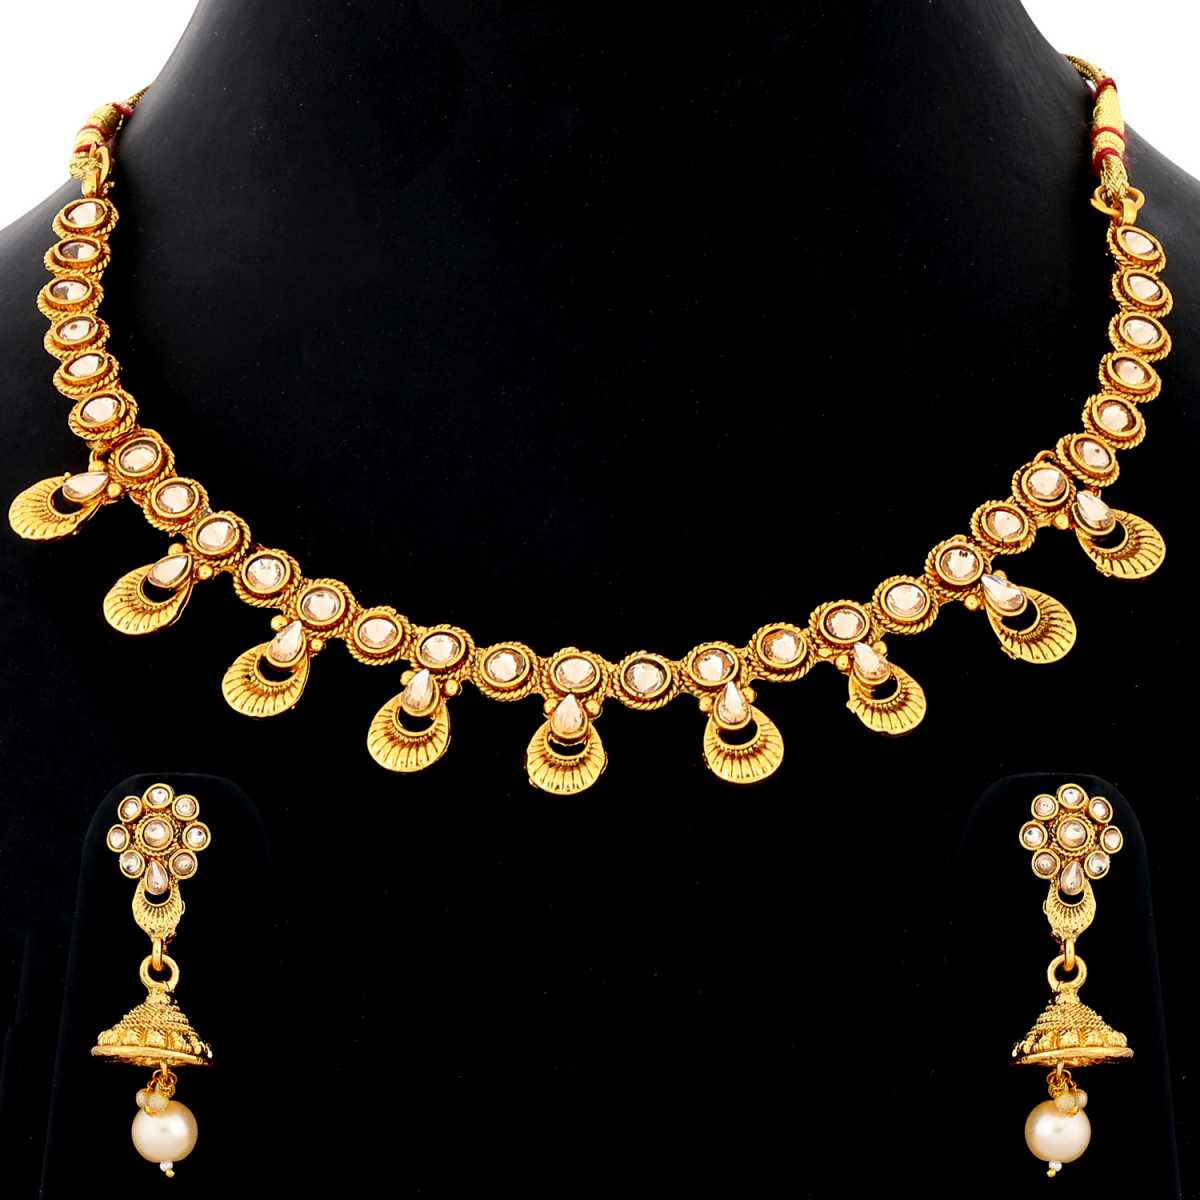 Silver Shine Exclusive Traditional Gold Plated White Kundan stone studded Designer Bridal Wedding Necklace Jewellery Set for Girls And women